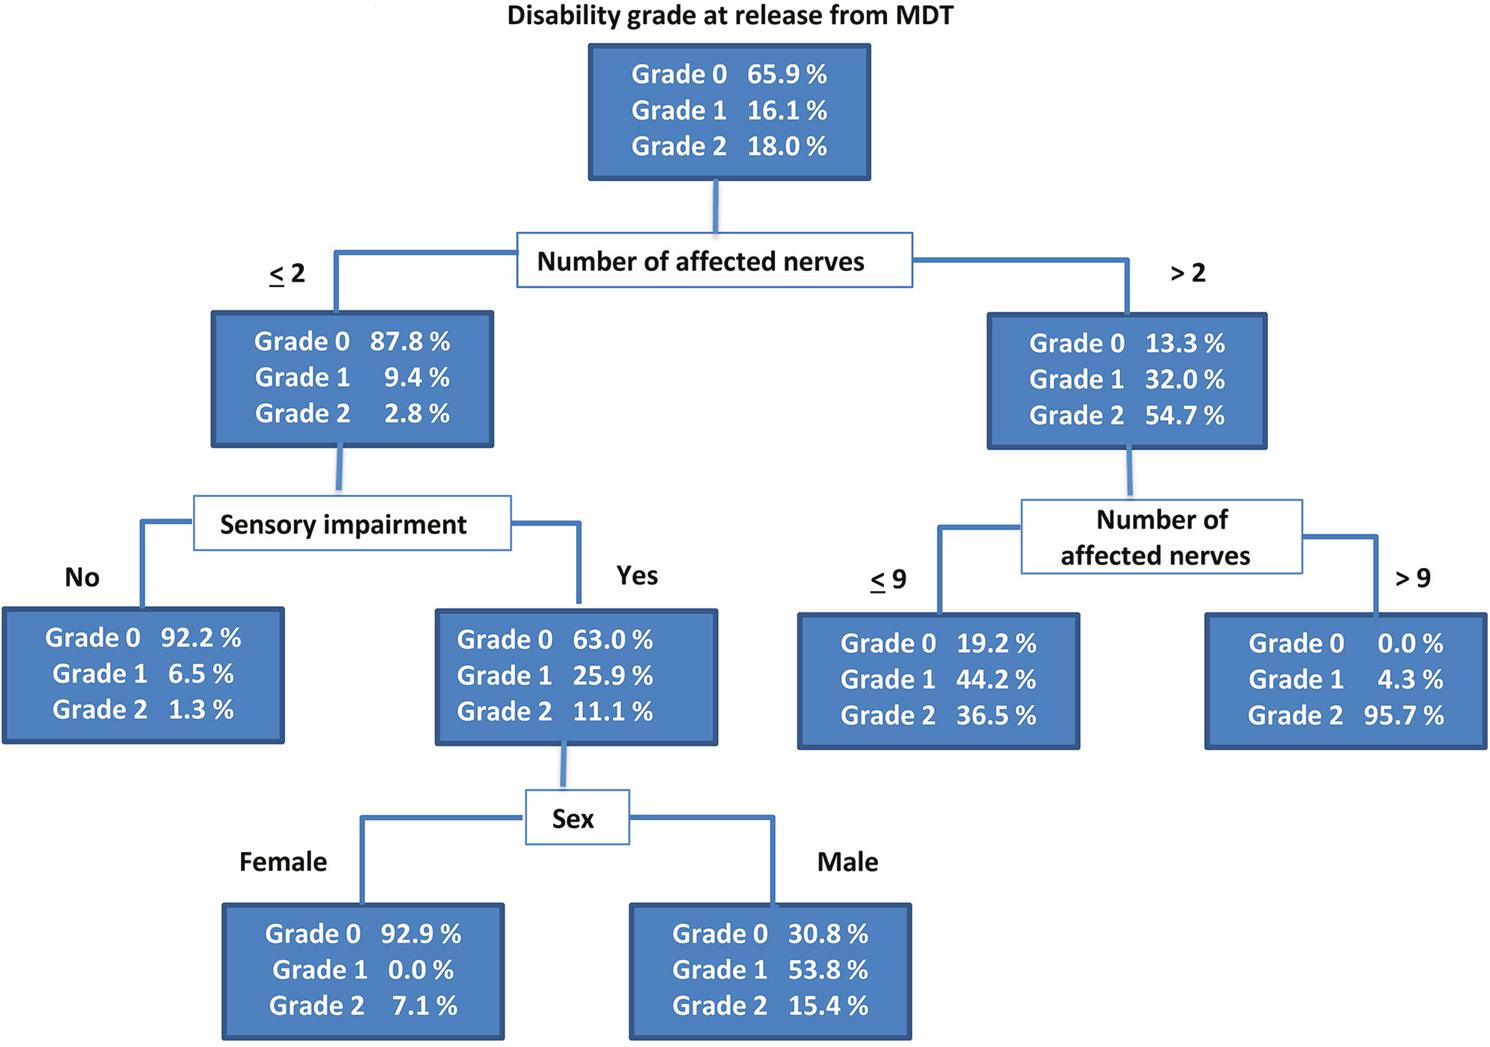 Classification and regression tree for factors associated with the disability grade upon release from multidrug therapy (MDT) in new cases of leprosy.